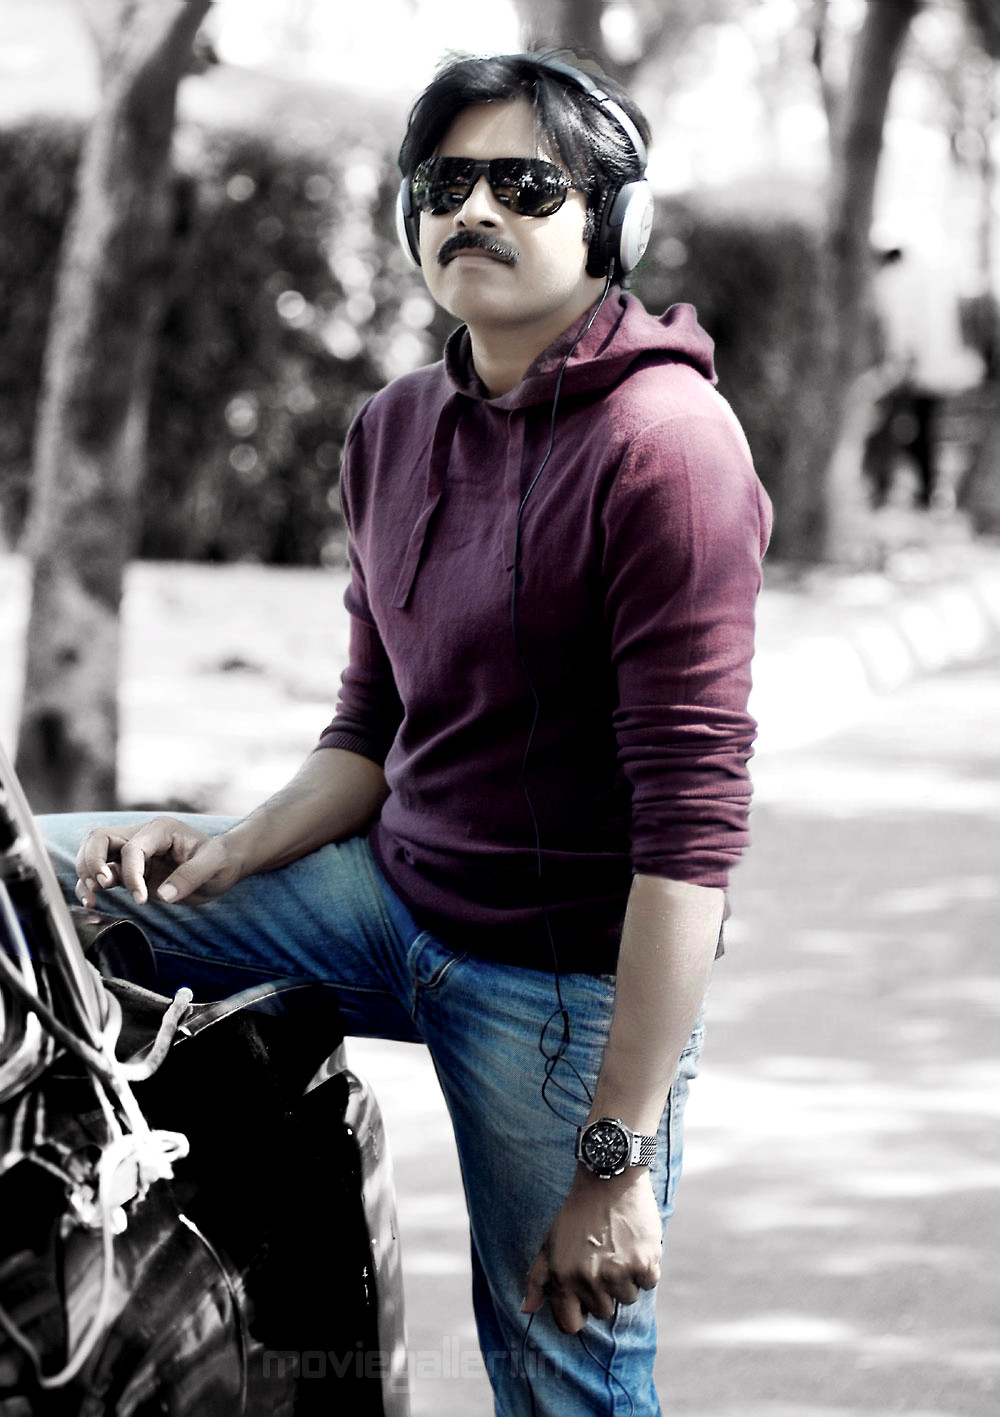 power star pawan kalyan teen maar(2011) movie latest stills | pawan